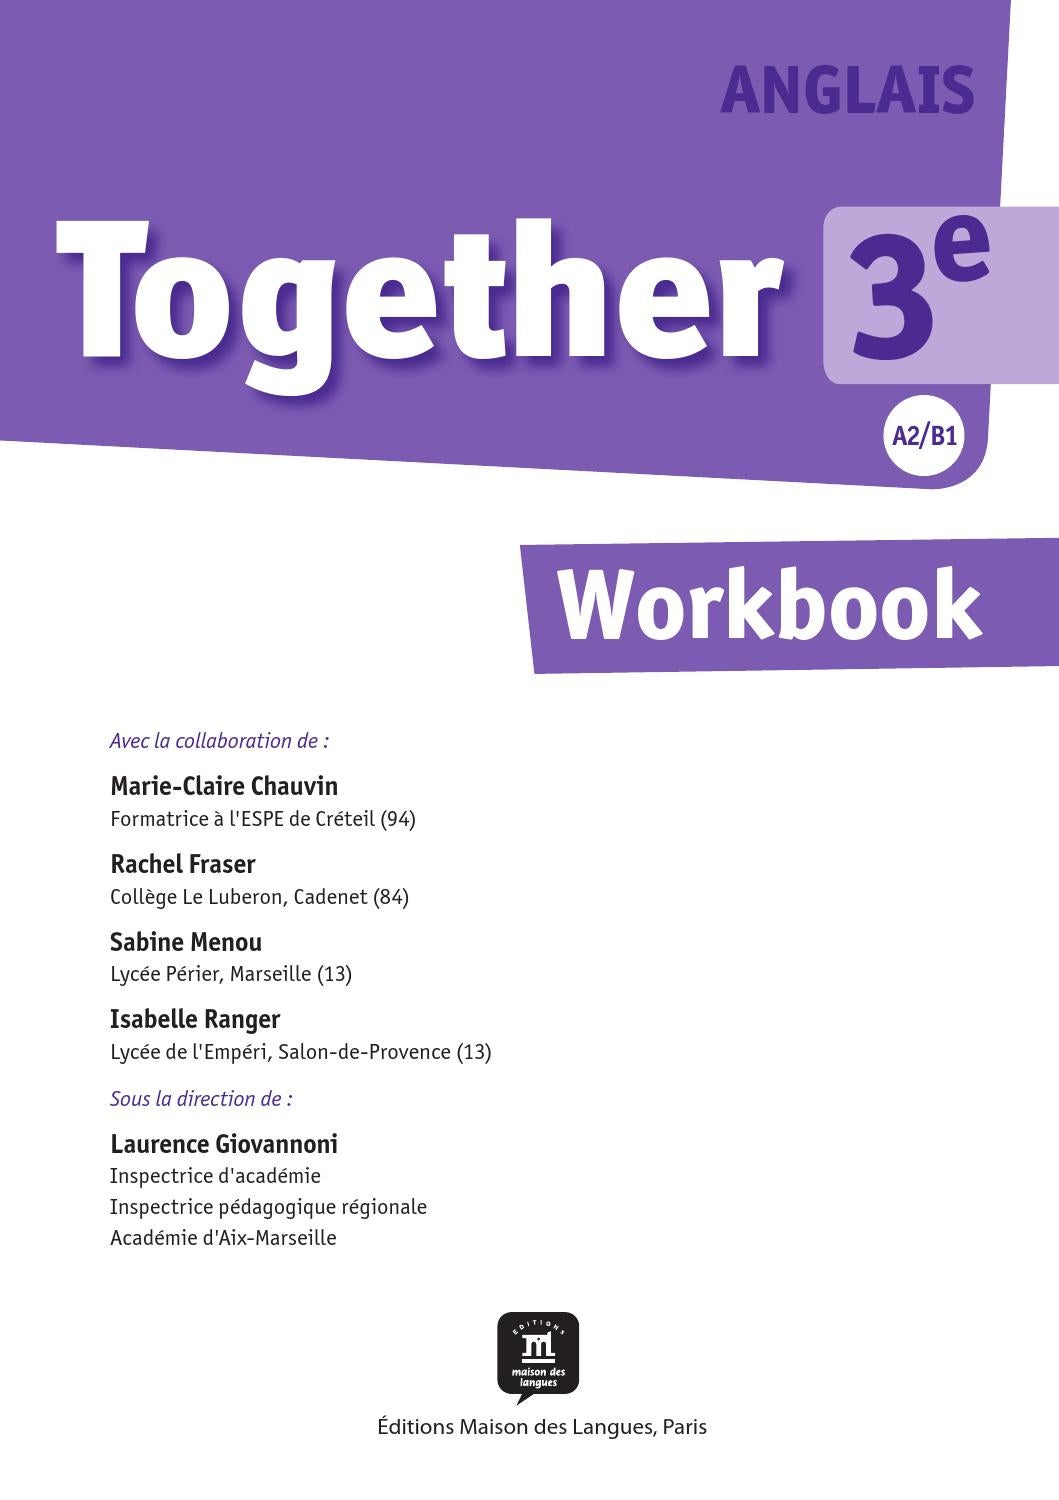 Together 3e workbook ditions maison des langues by - Boulangerie marie blachere salon de provence ...